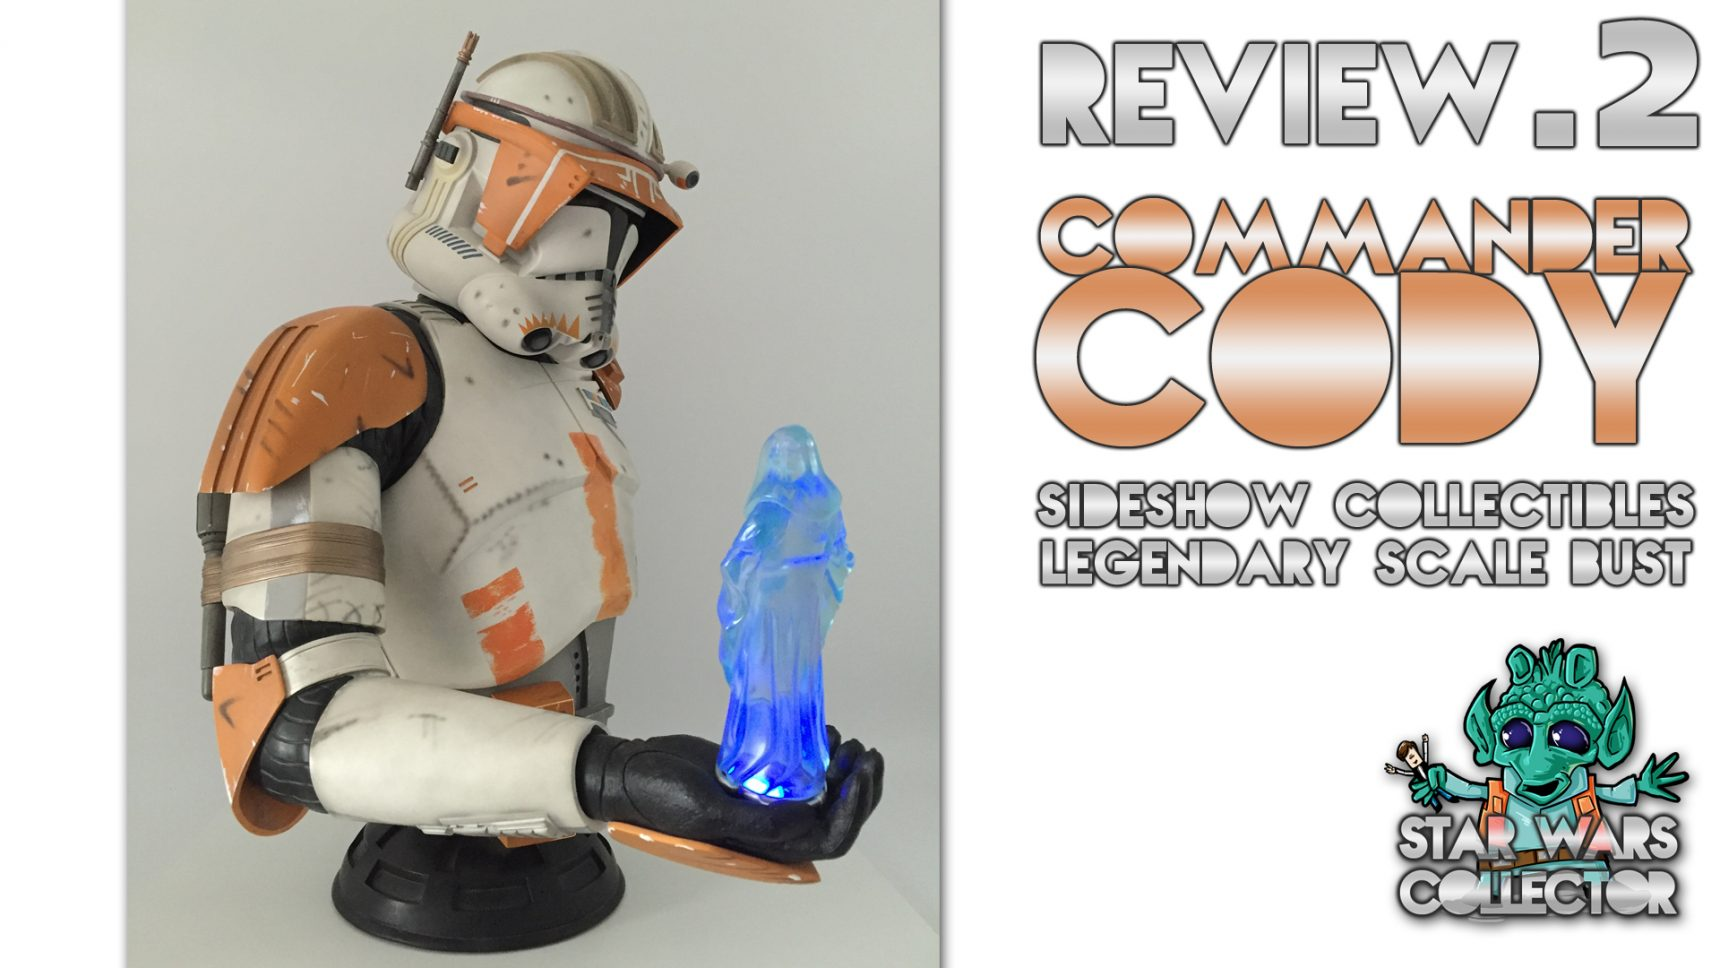 #review: Sideshow Commander Cody Legendary Scale Bust – Video